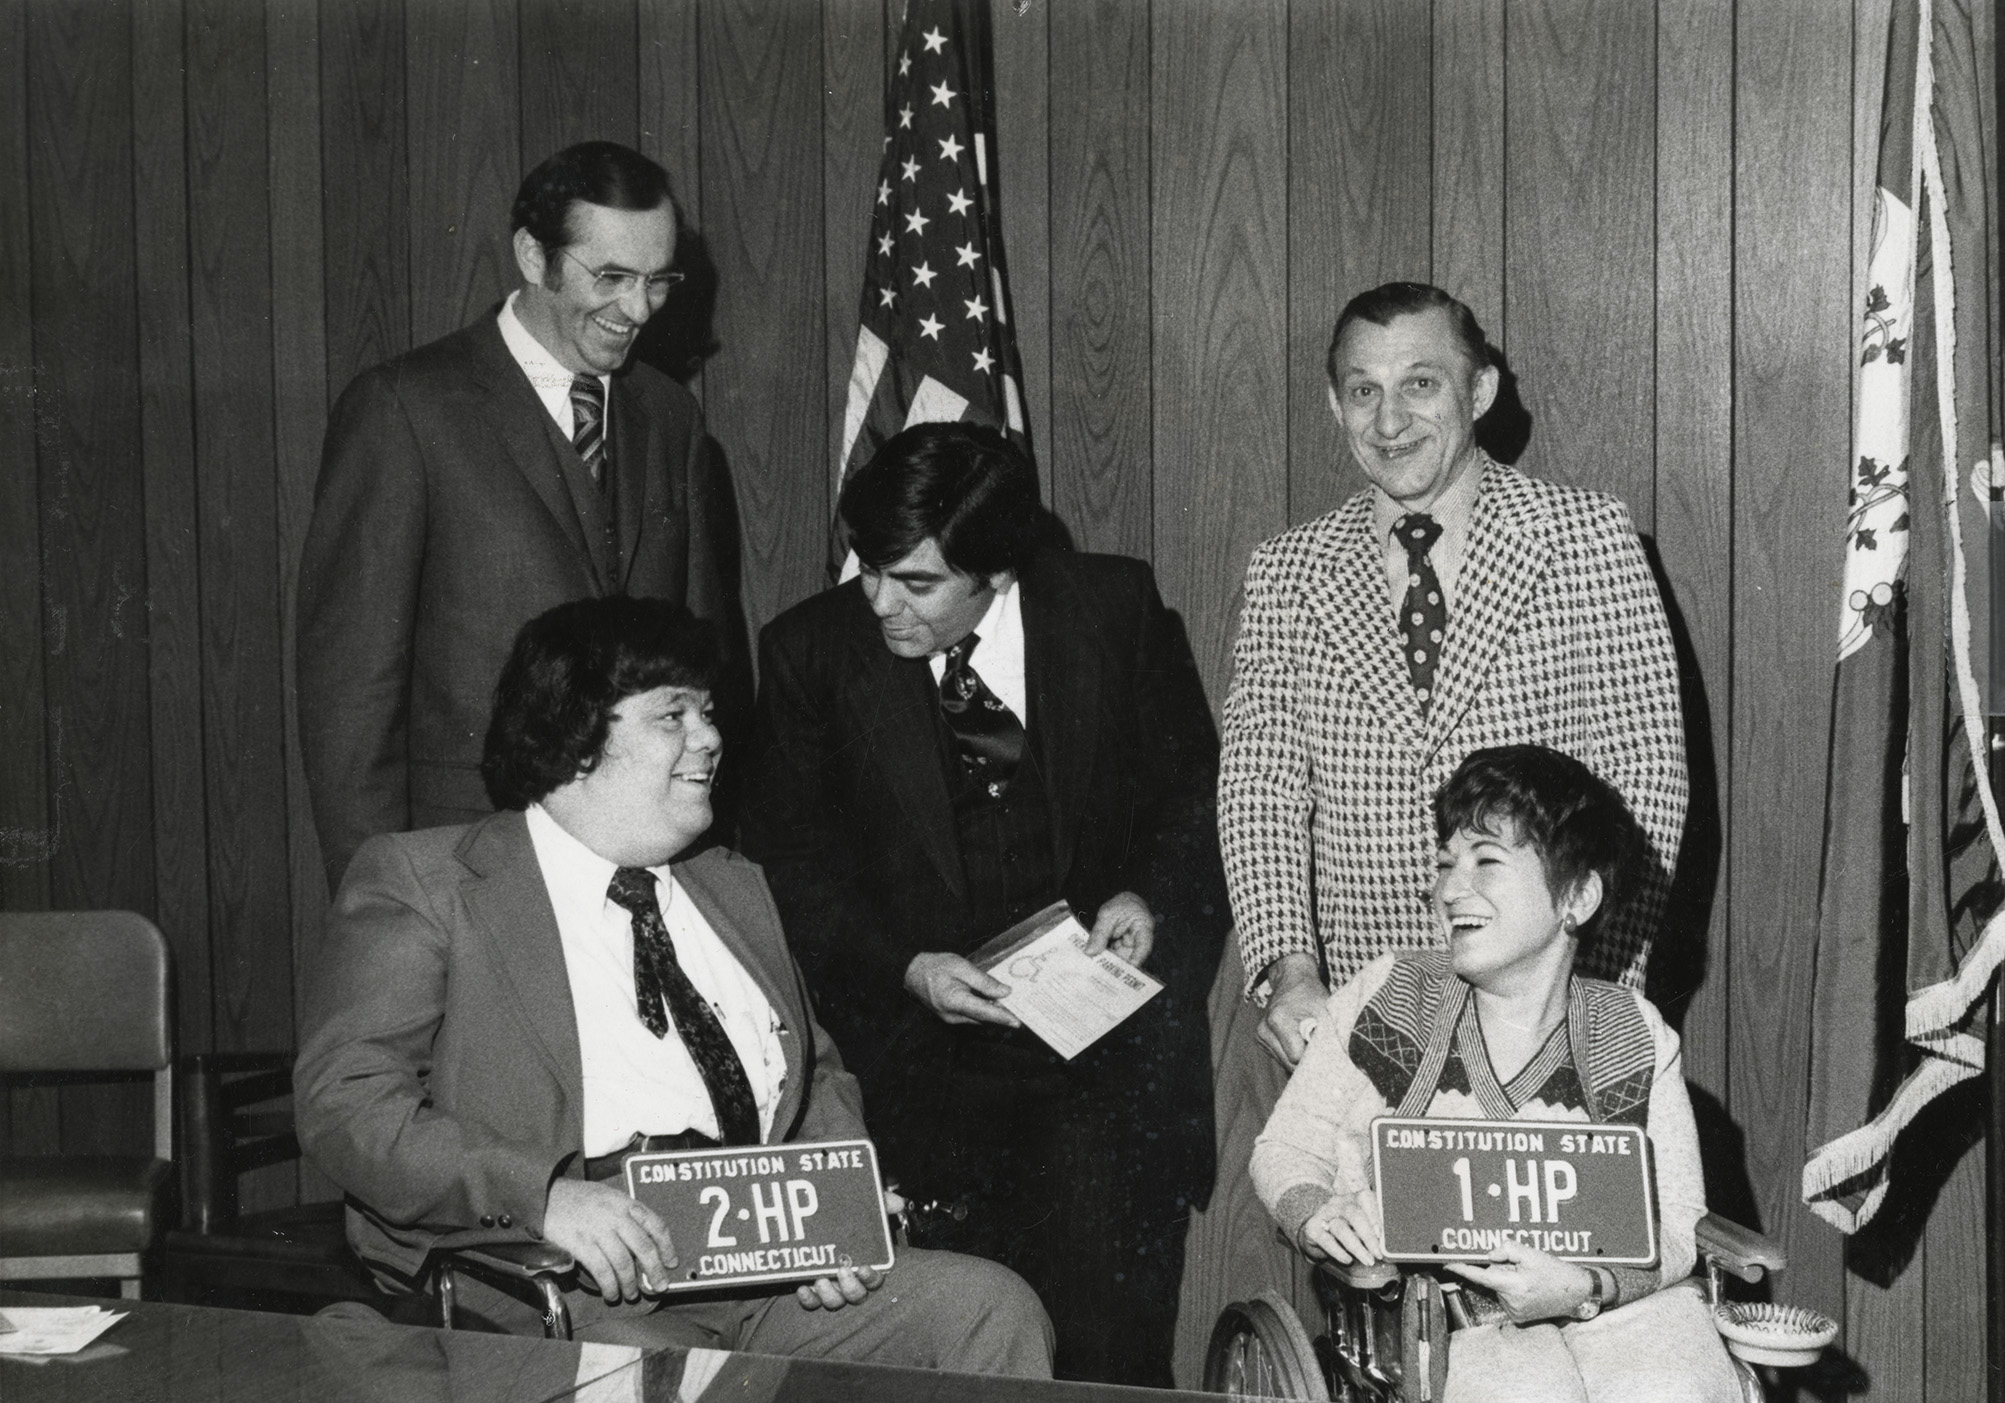 -	Phyllis Zlotnick (bottom right) photographed holding Connecticut's first state license plate for handicapped residents